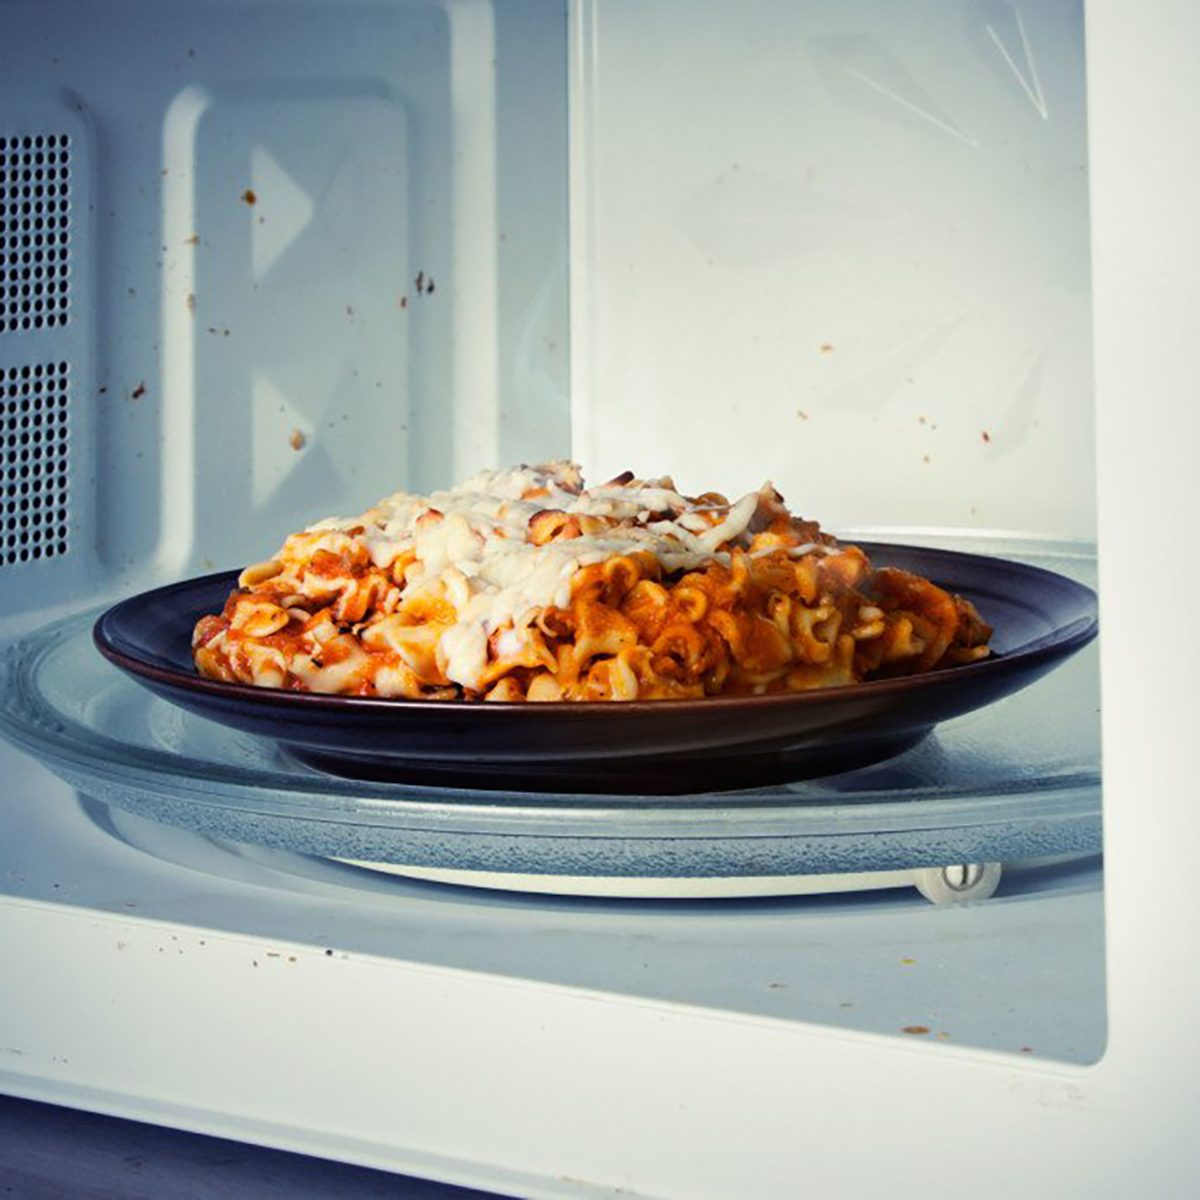 dish in the microwave